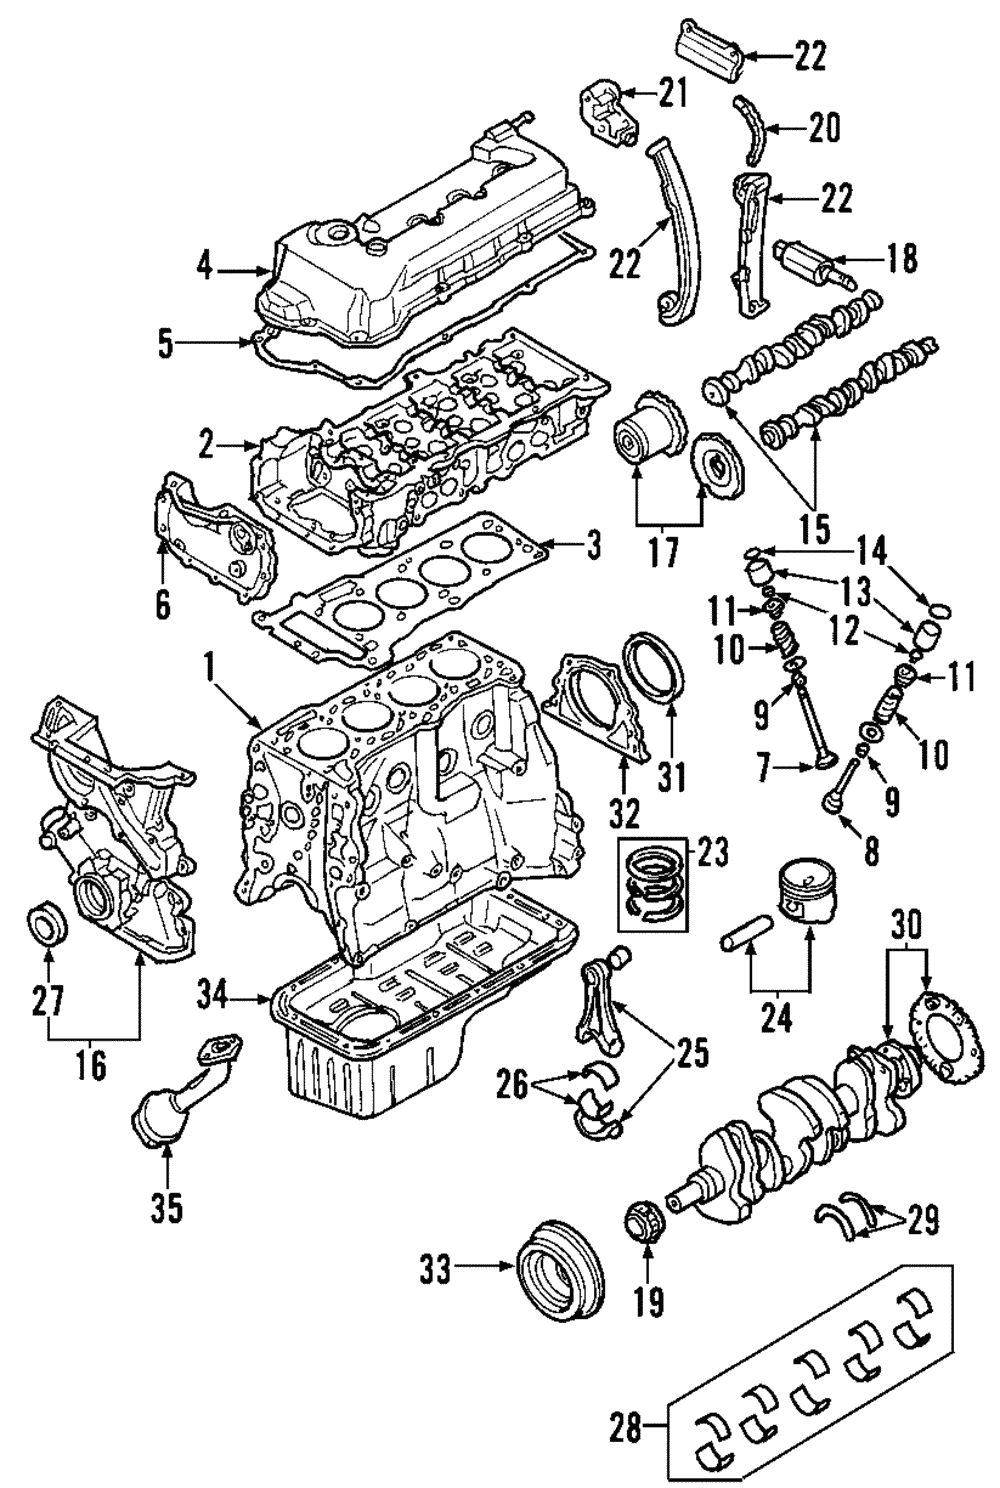 [SCHEMATICS_4CA]  Genuine Nissan Chain Guide 13091-4M500 | eBay | 02 Sentra Engine Diagram |  | eBay